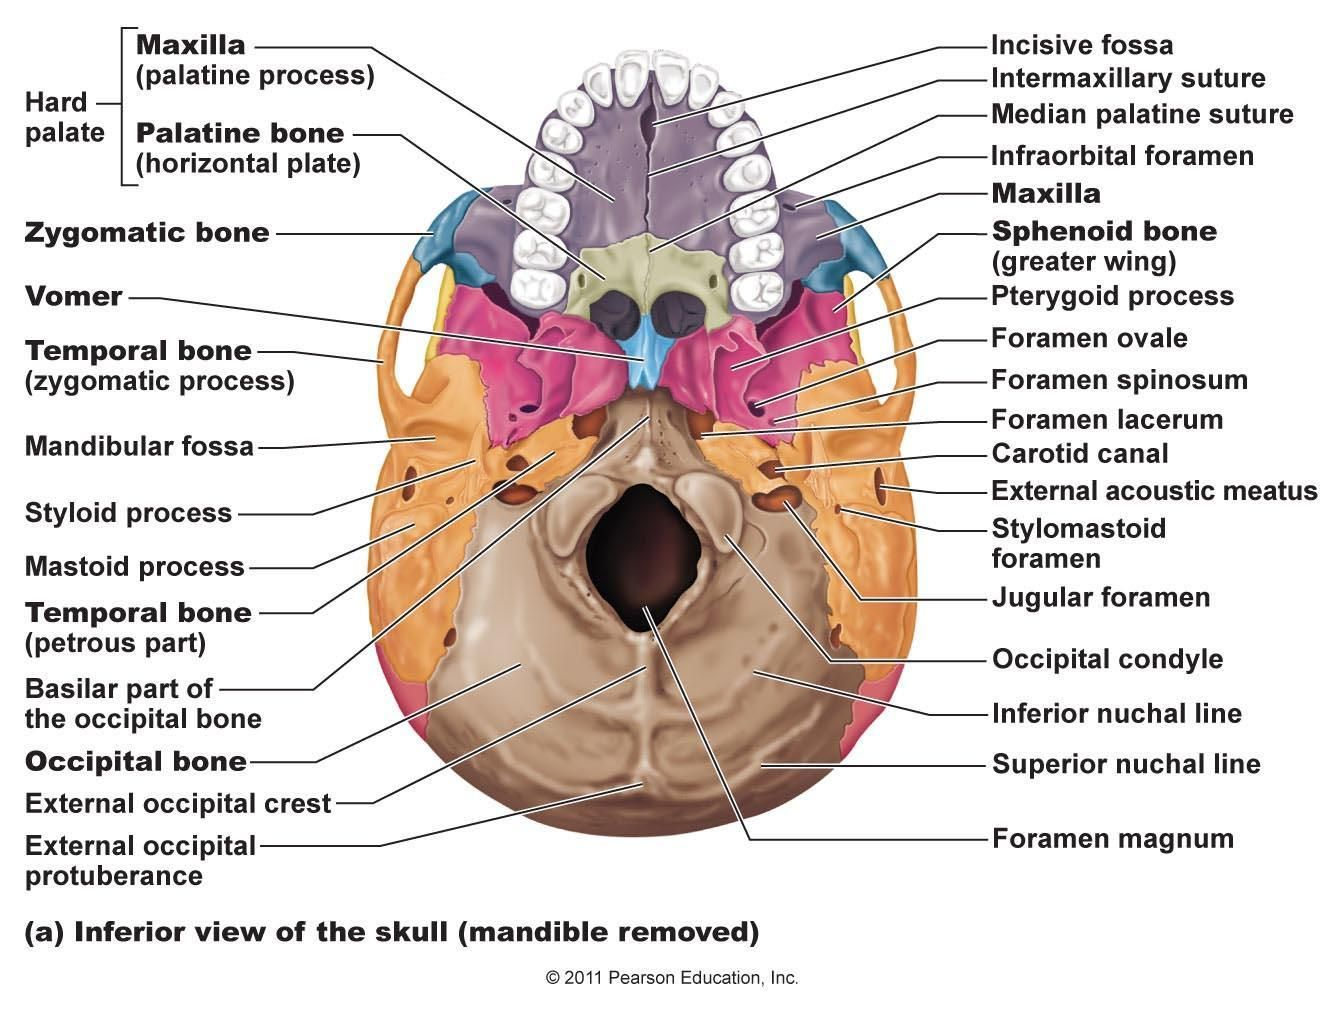 diagram of skull superior view anatomy garage door opener parts skeletal bones from head to toe palatine 2